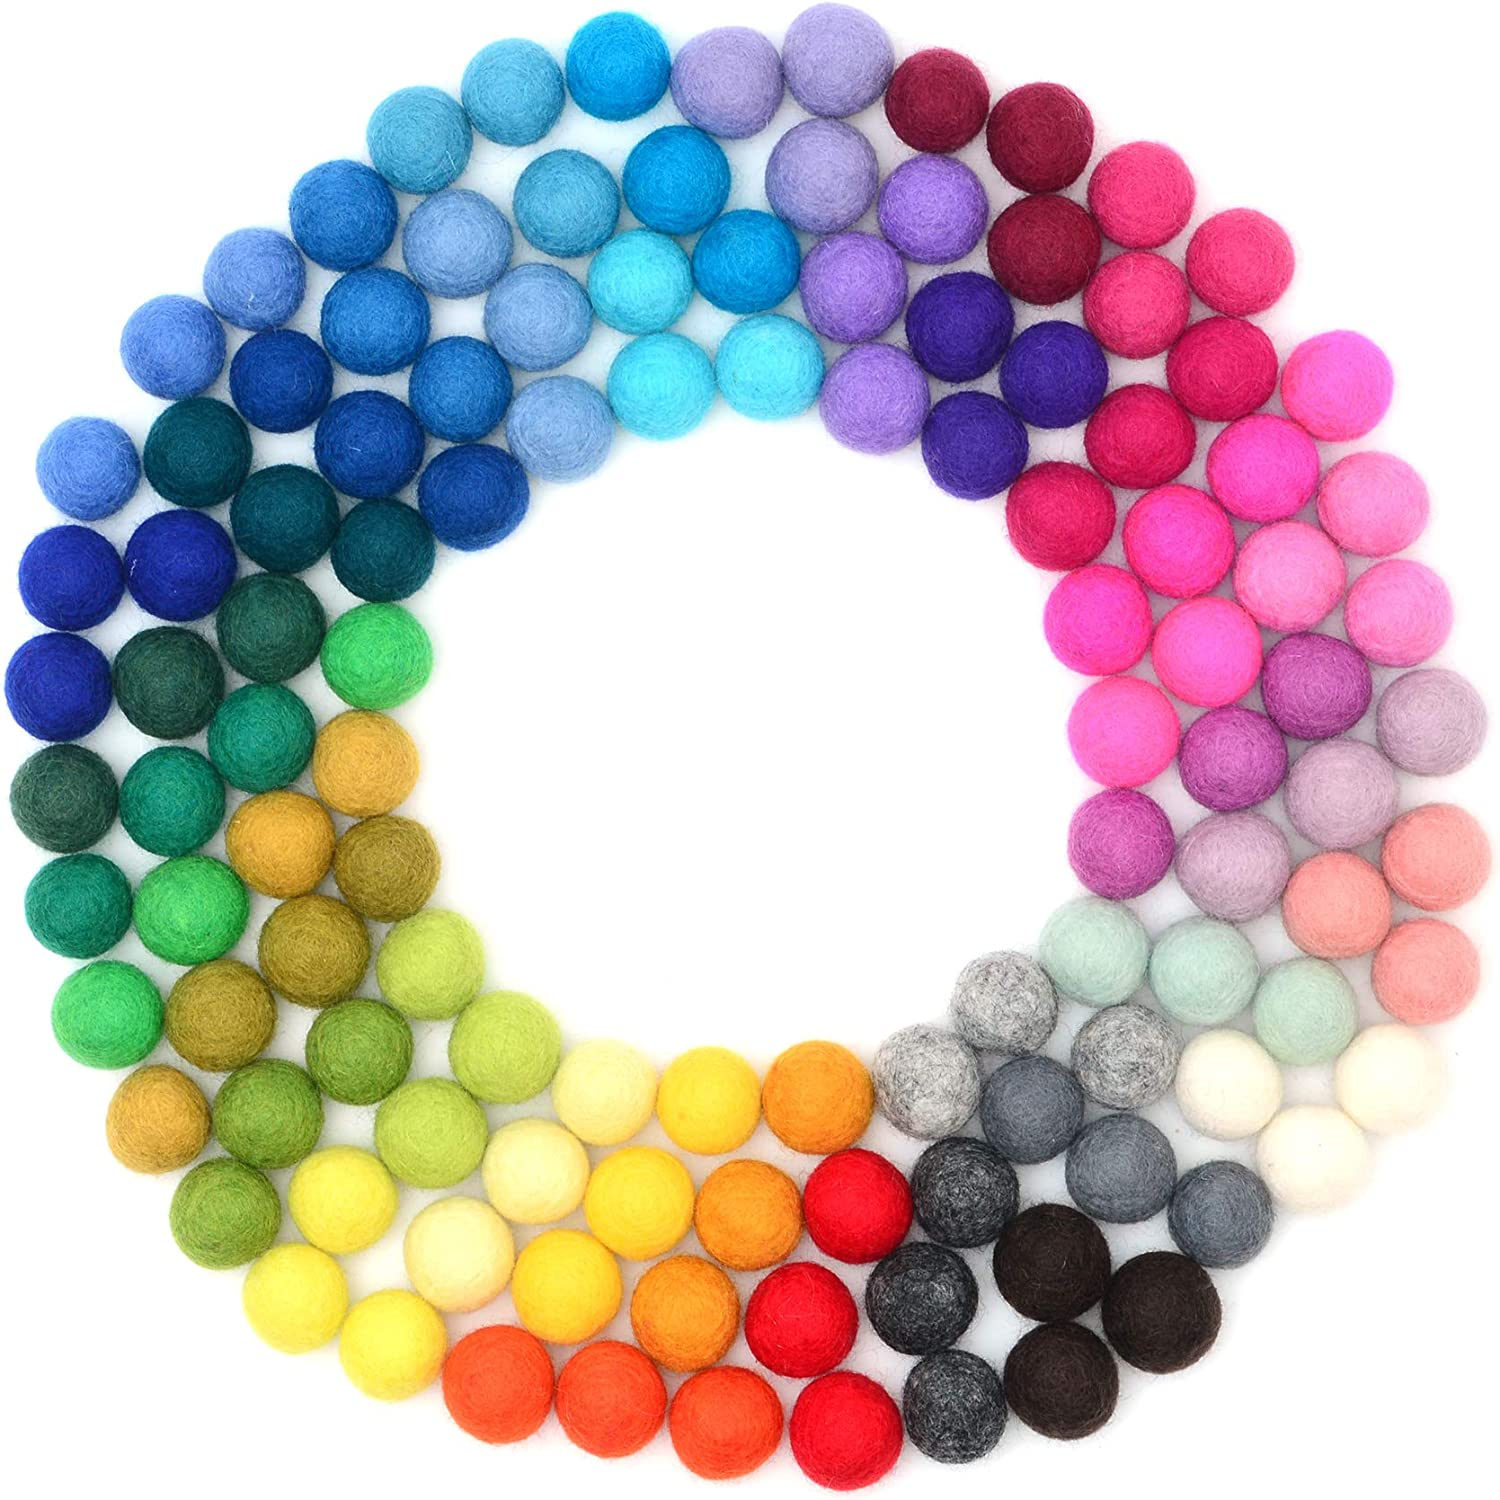 Glaciart One Felt Pom Poms, Felt Balls (120 Pieces) 2.5 Centimeters - 1 Inch, Handmade Felted 40 Color (Red, Pink, Blue, Orange, Yellow, Pastel and More) Bulk Small Puff for Felting and Garland